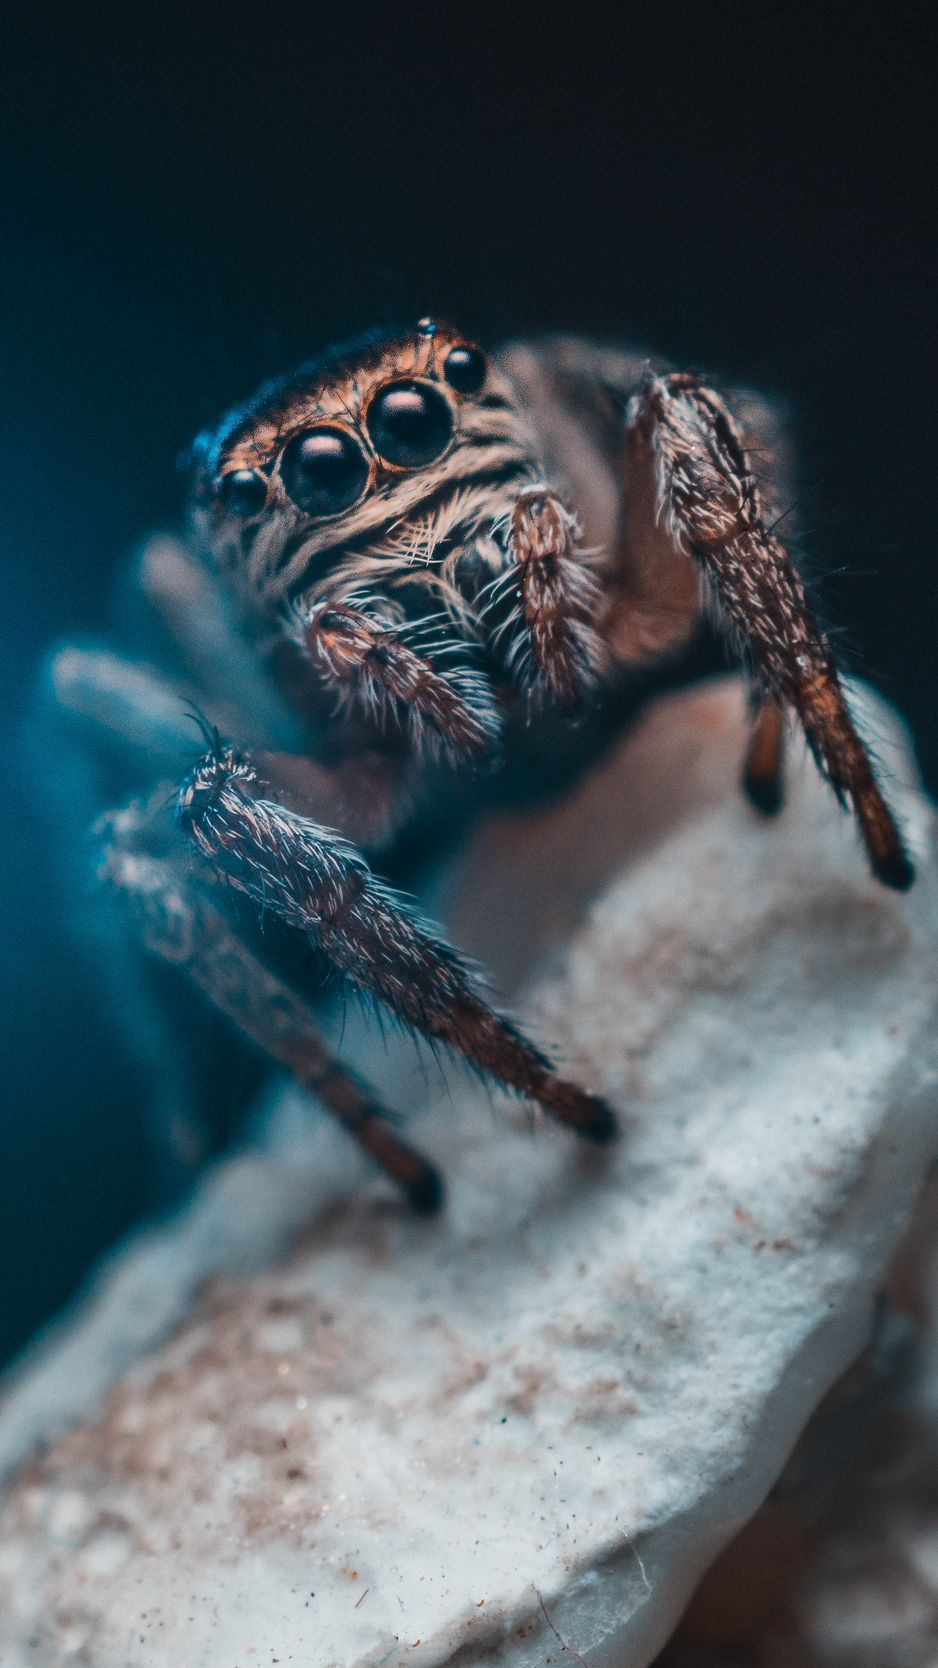 Spider eyes insect wallpaper background iphone Pet spider 938x1668